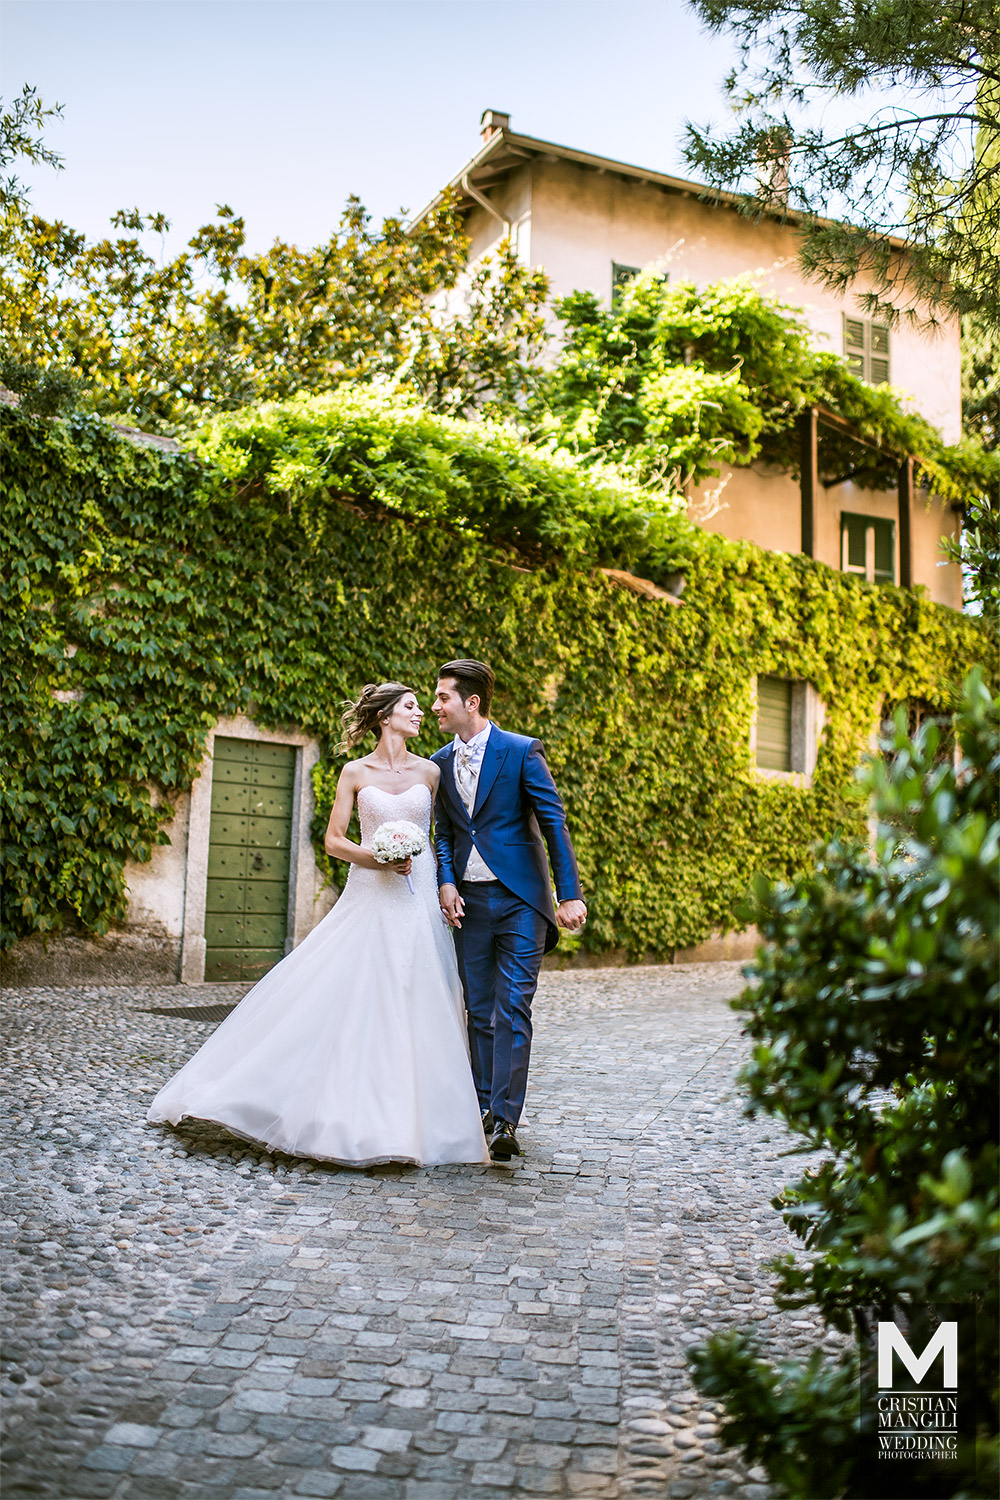 newlyweds-walking-in-varenna-como-lake-wedding-photography